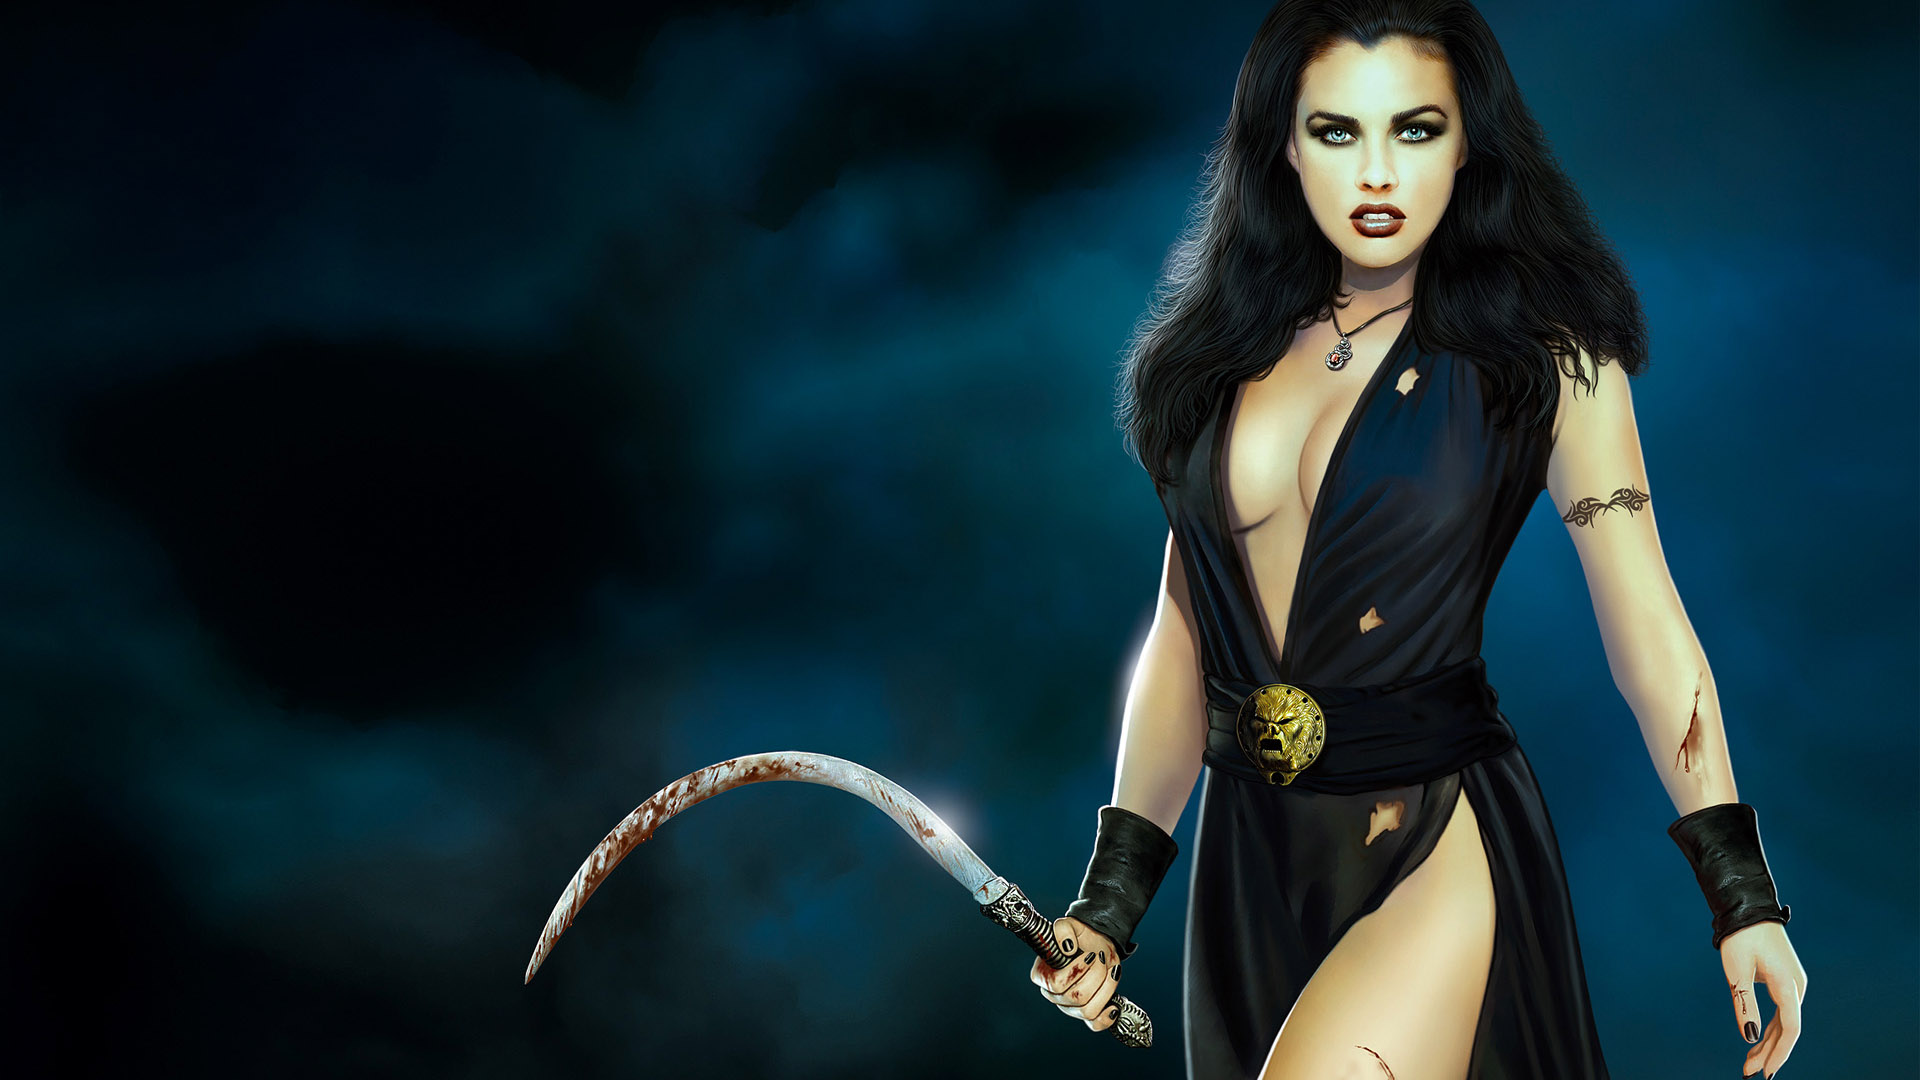 Sexy gaming girls, chubby australian girl pics